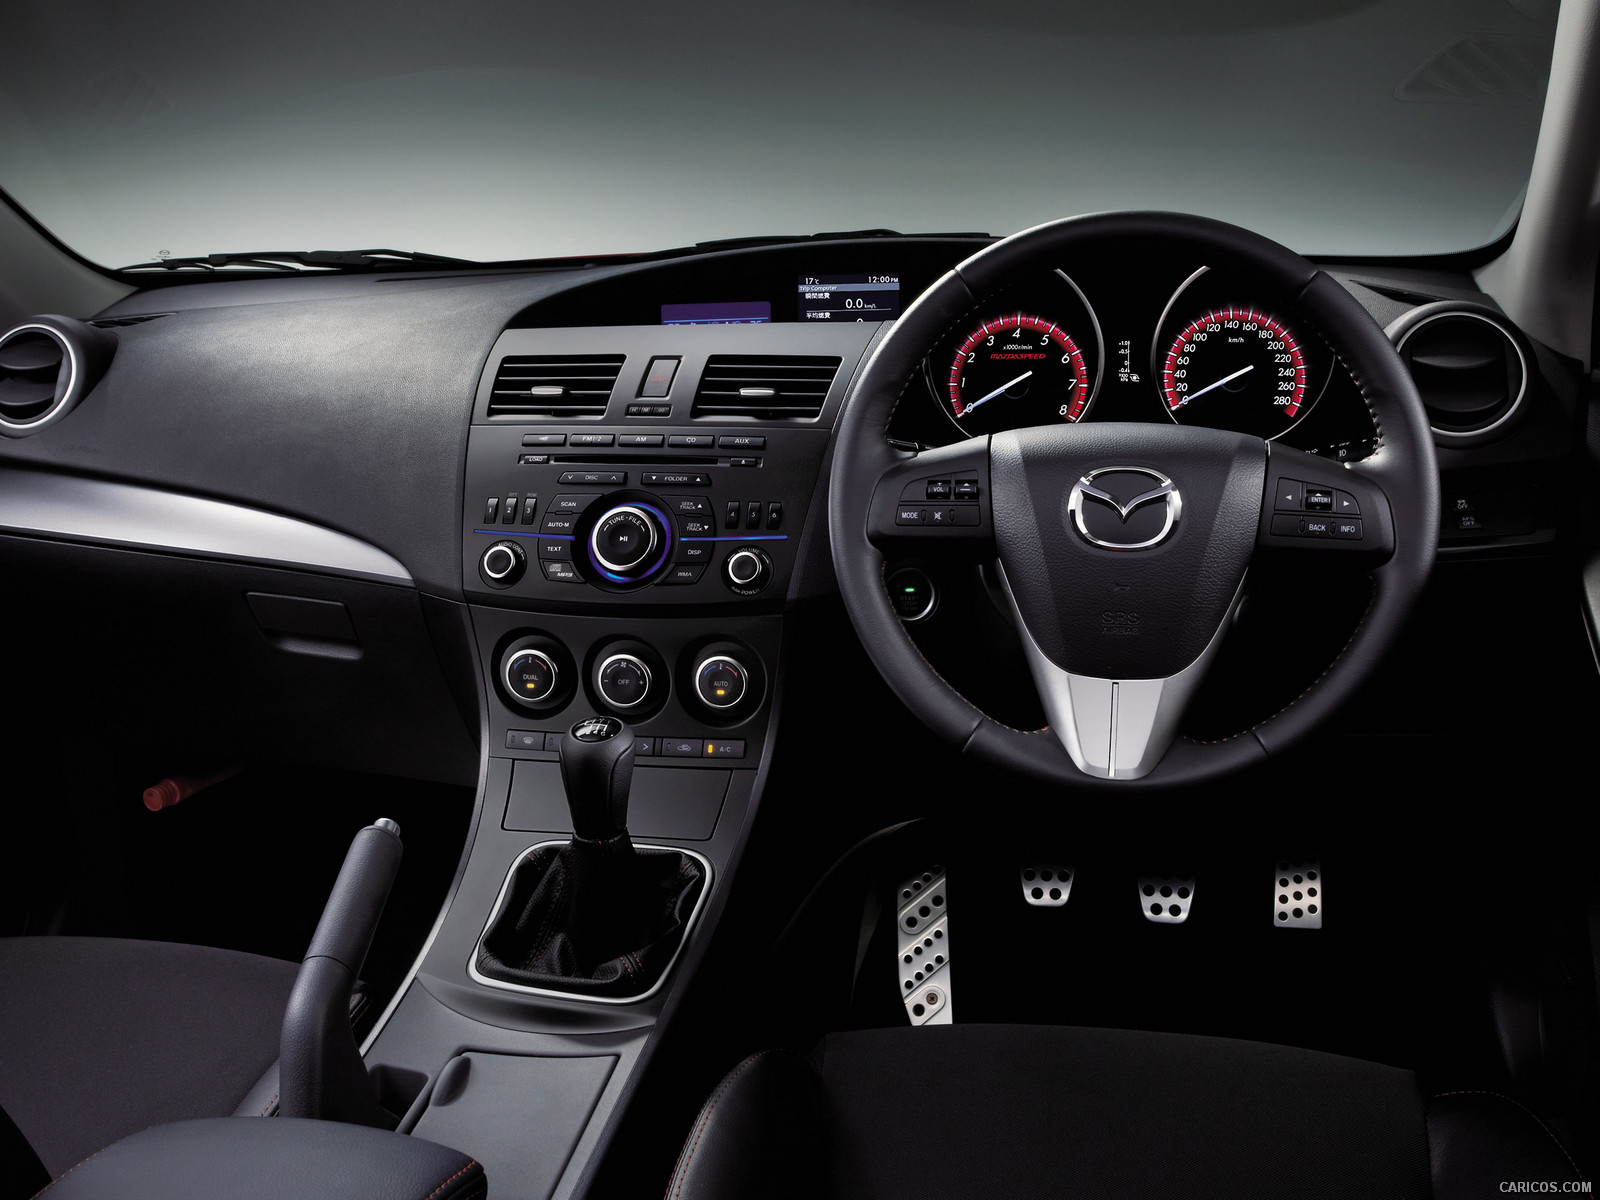 2012 Mazda MazdaSpeed 3   Interior Wallpaper 4 1600x1200